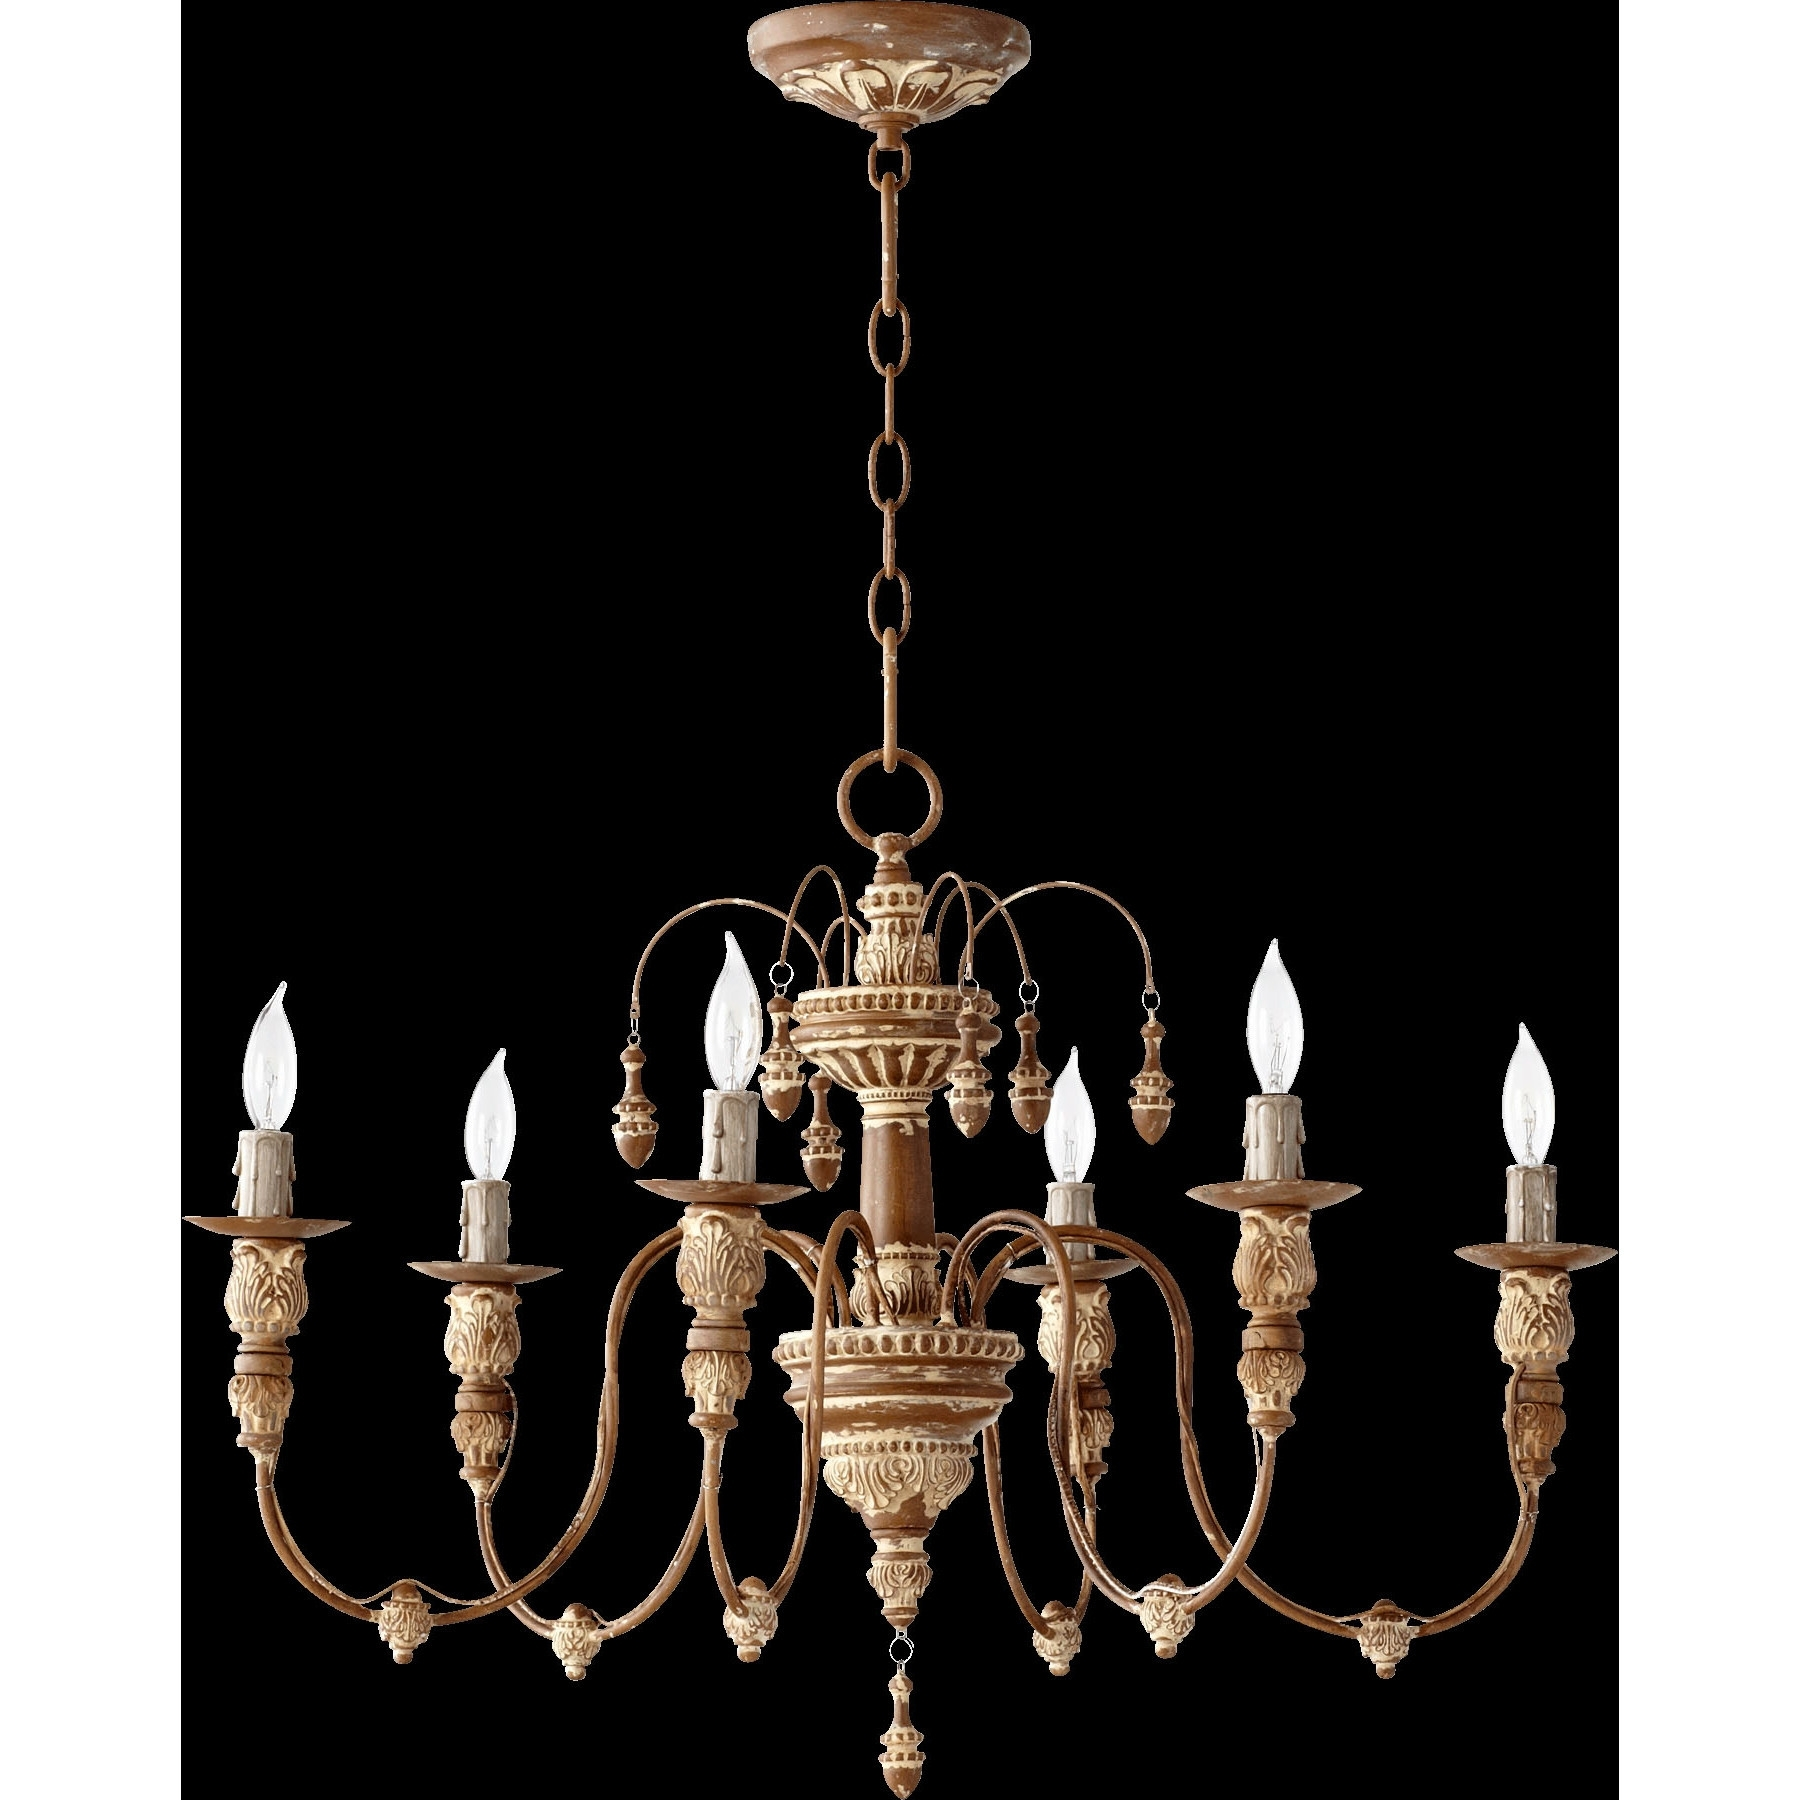 Wayfair Chandeliers Throughout Well Known Chandeliers : Wayfair Chandeliers Awesome Lighting Lamps Traditional (View 19 of 20)